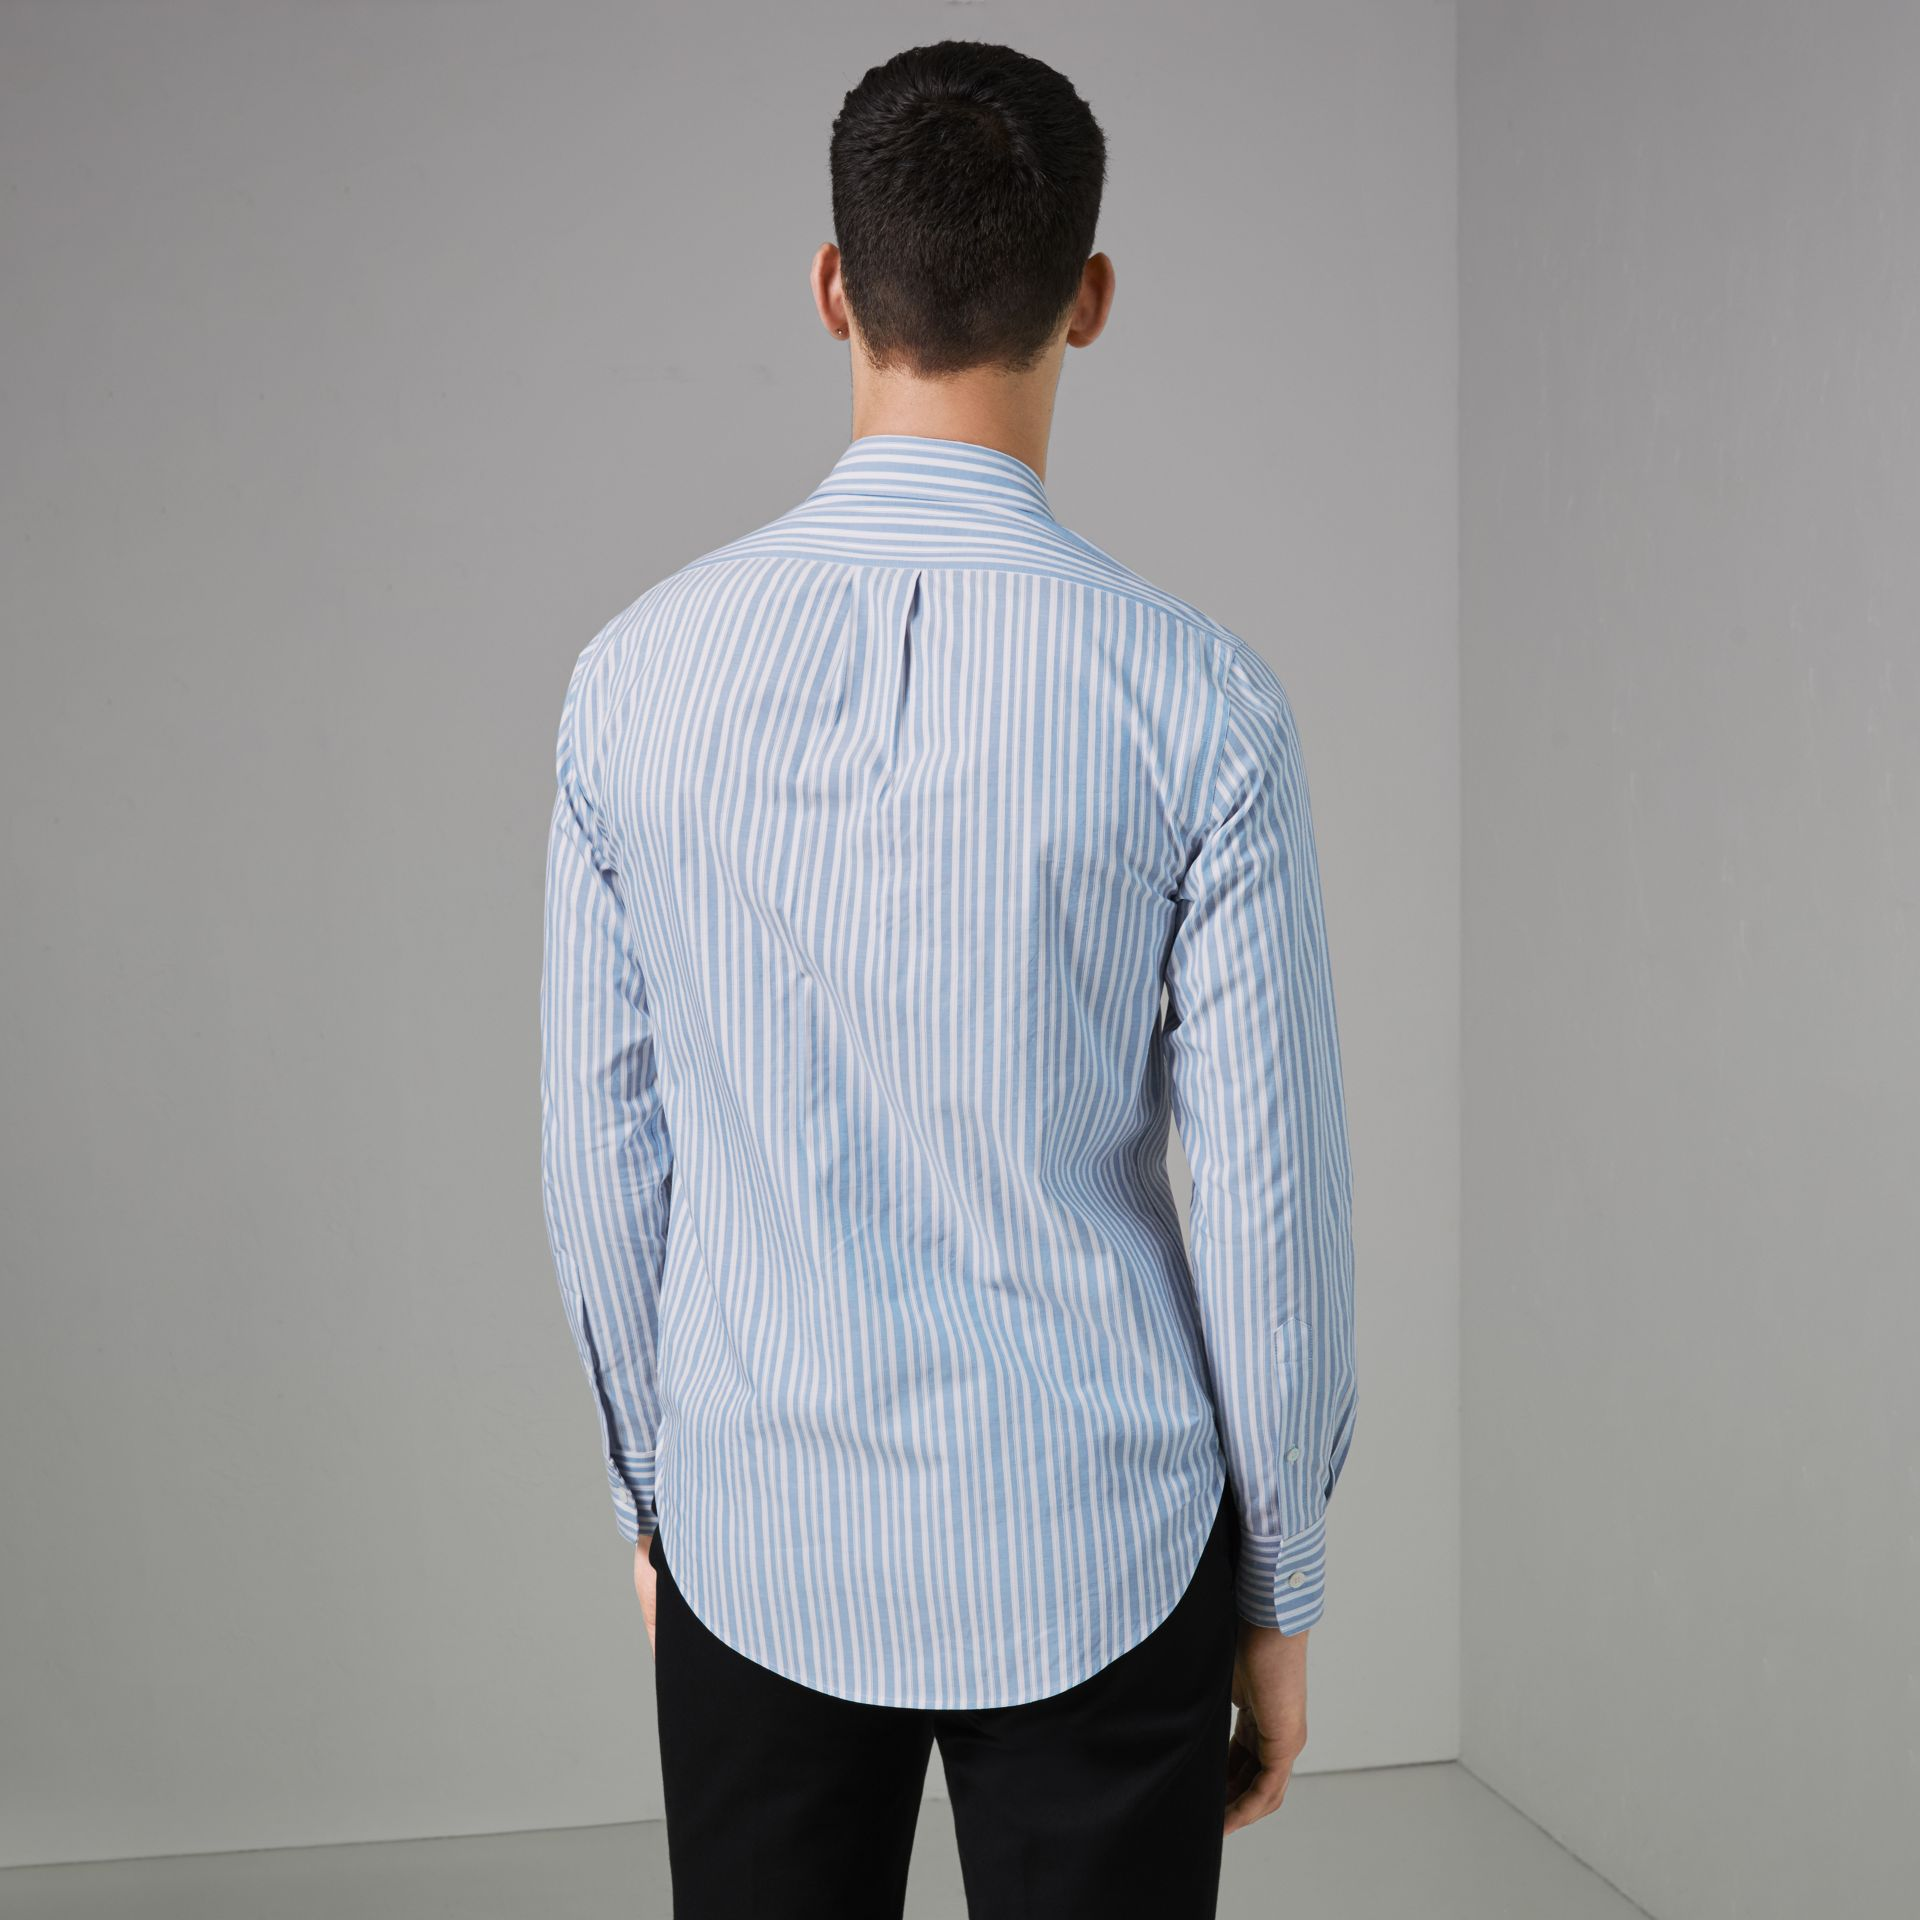 Embroidered Archive Logo Striped Cotton Shirt in Powder Blue - Men | Burberry - gallery image 2